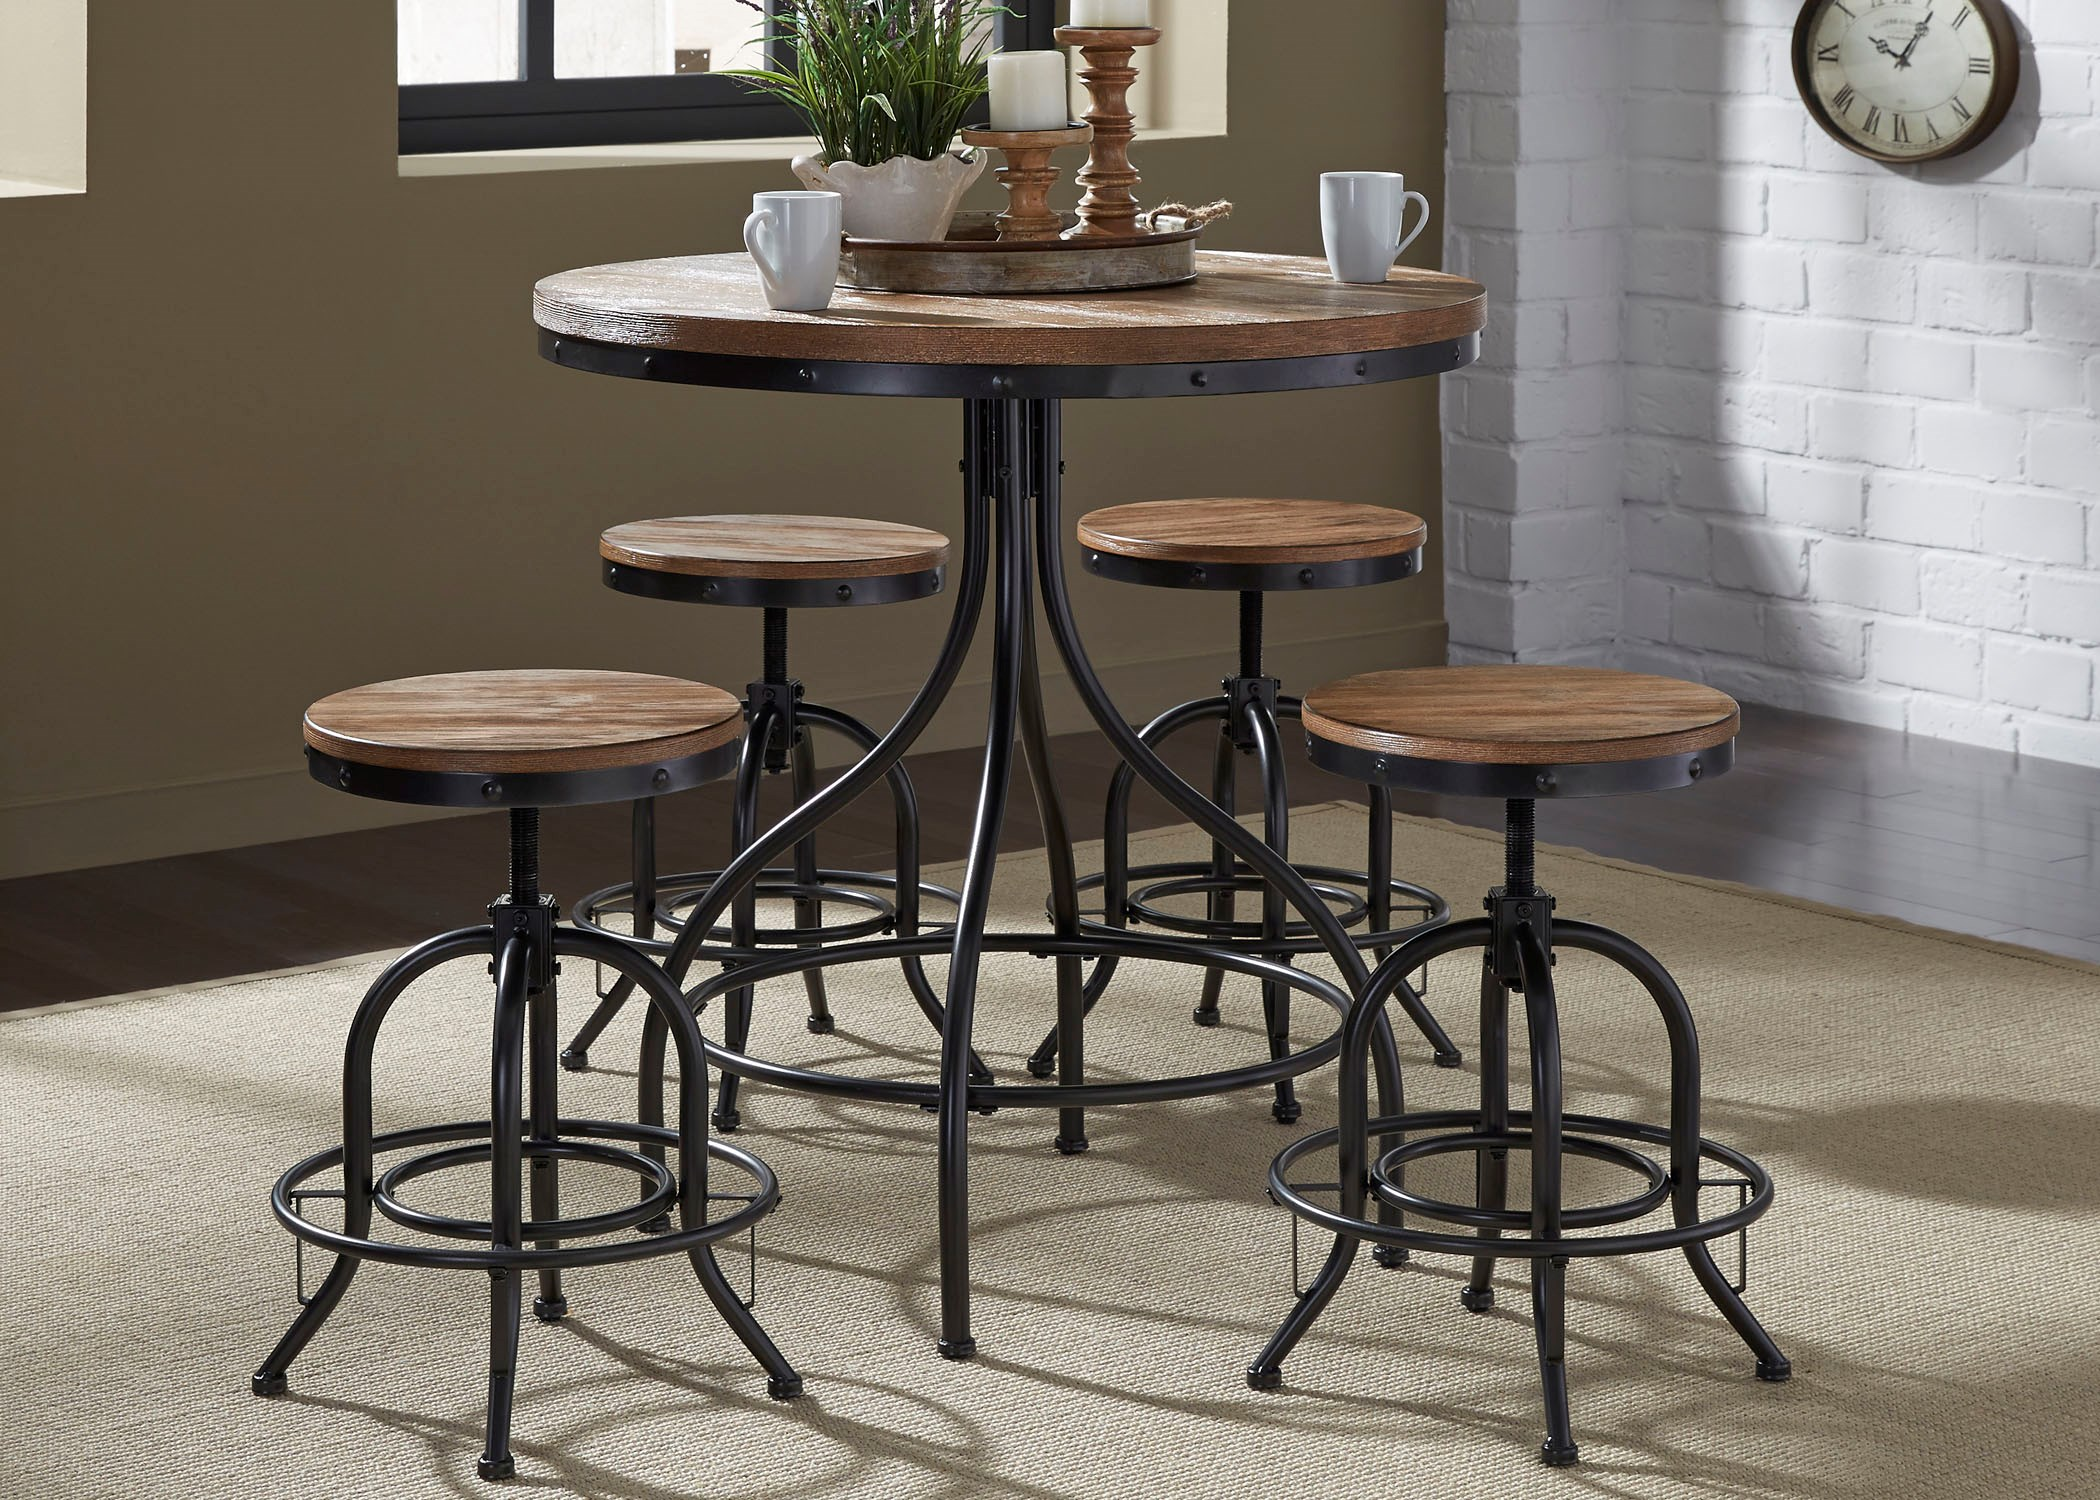 Bon Liberty Furniture Vintage Dining Series 5 Piece Pub Table And Bar Stool Set